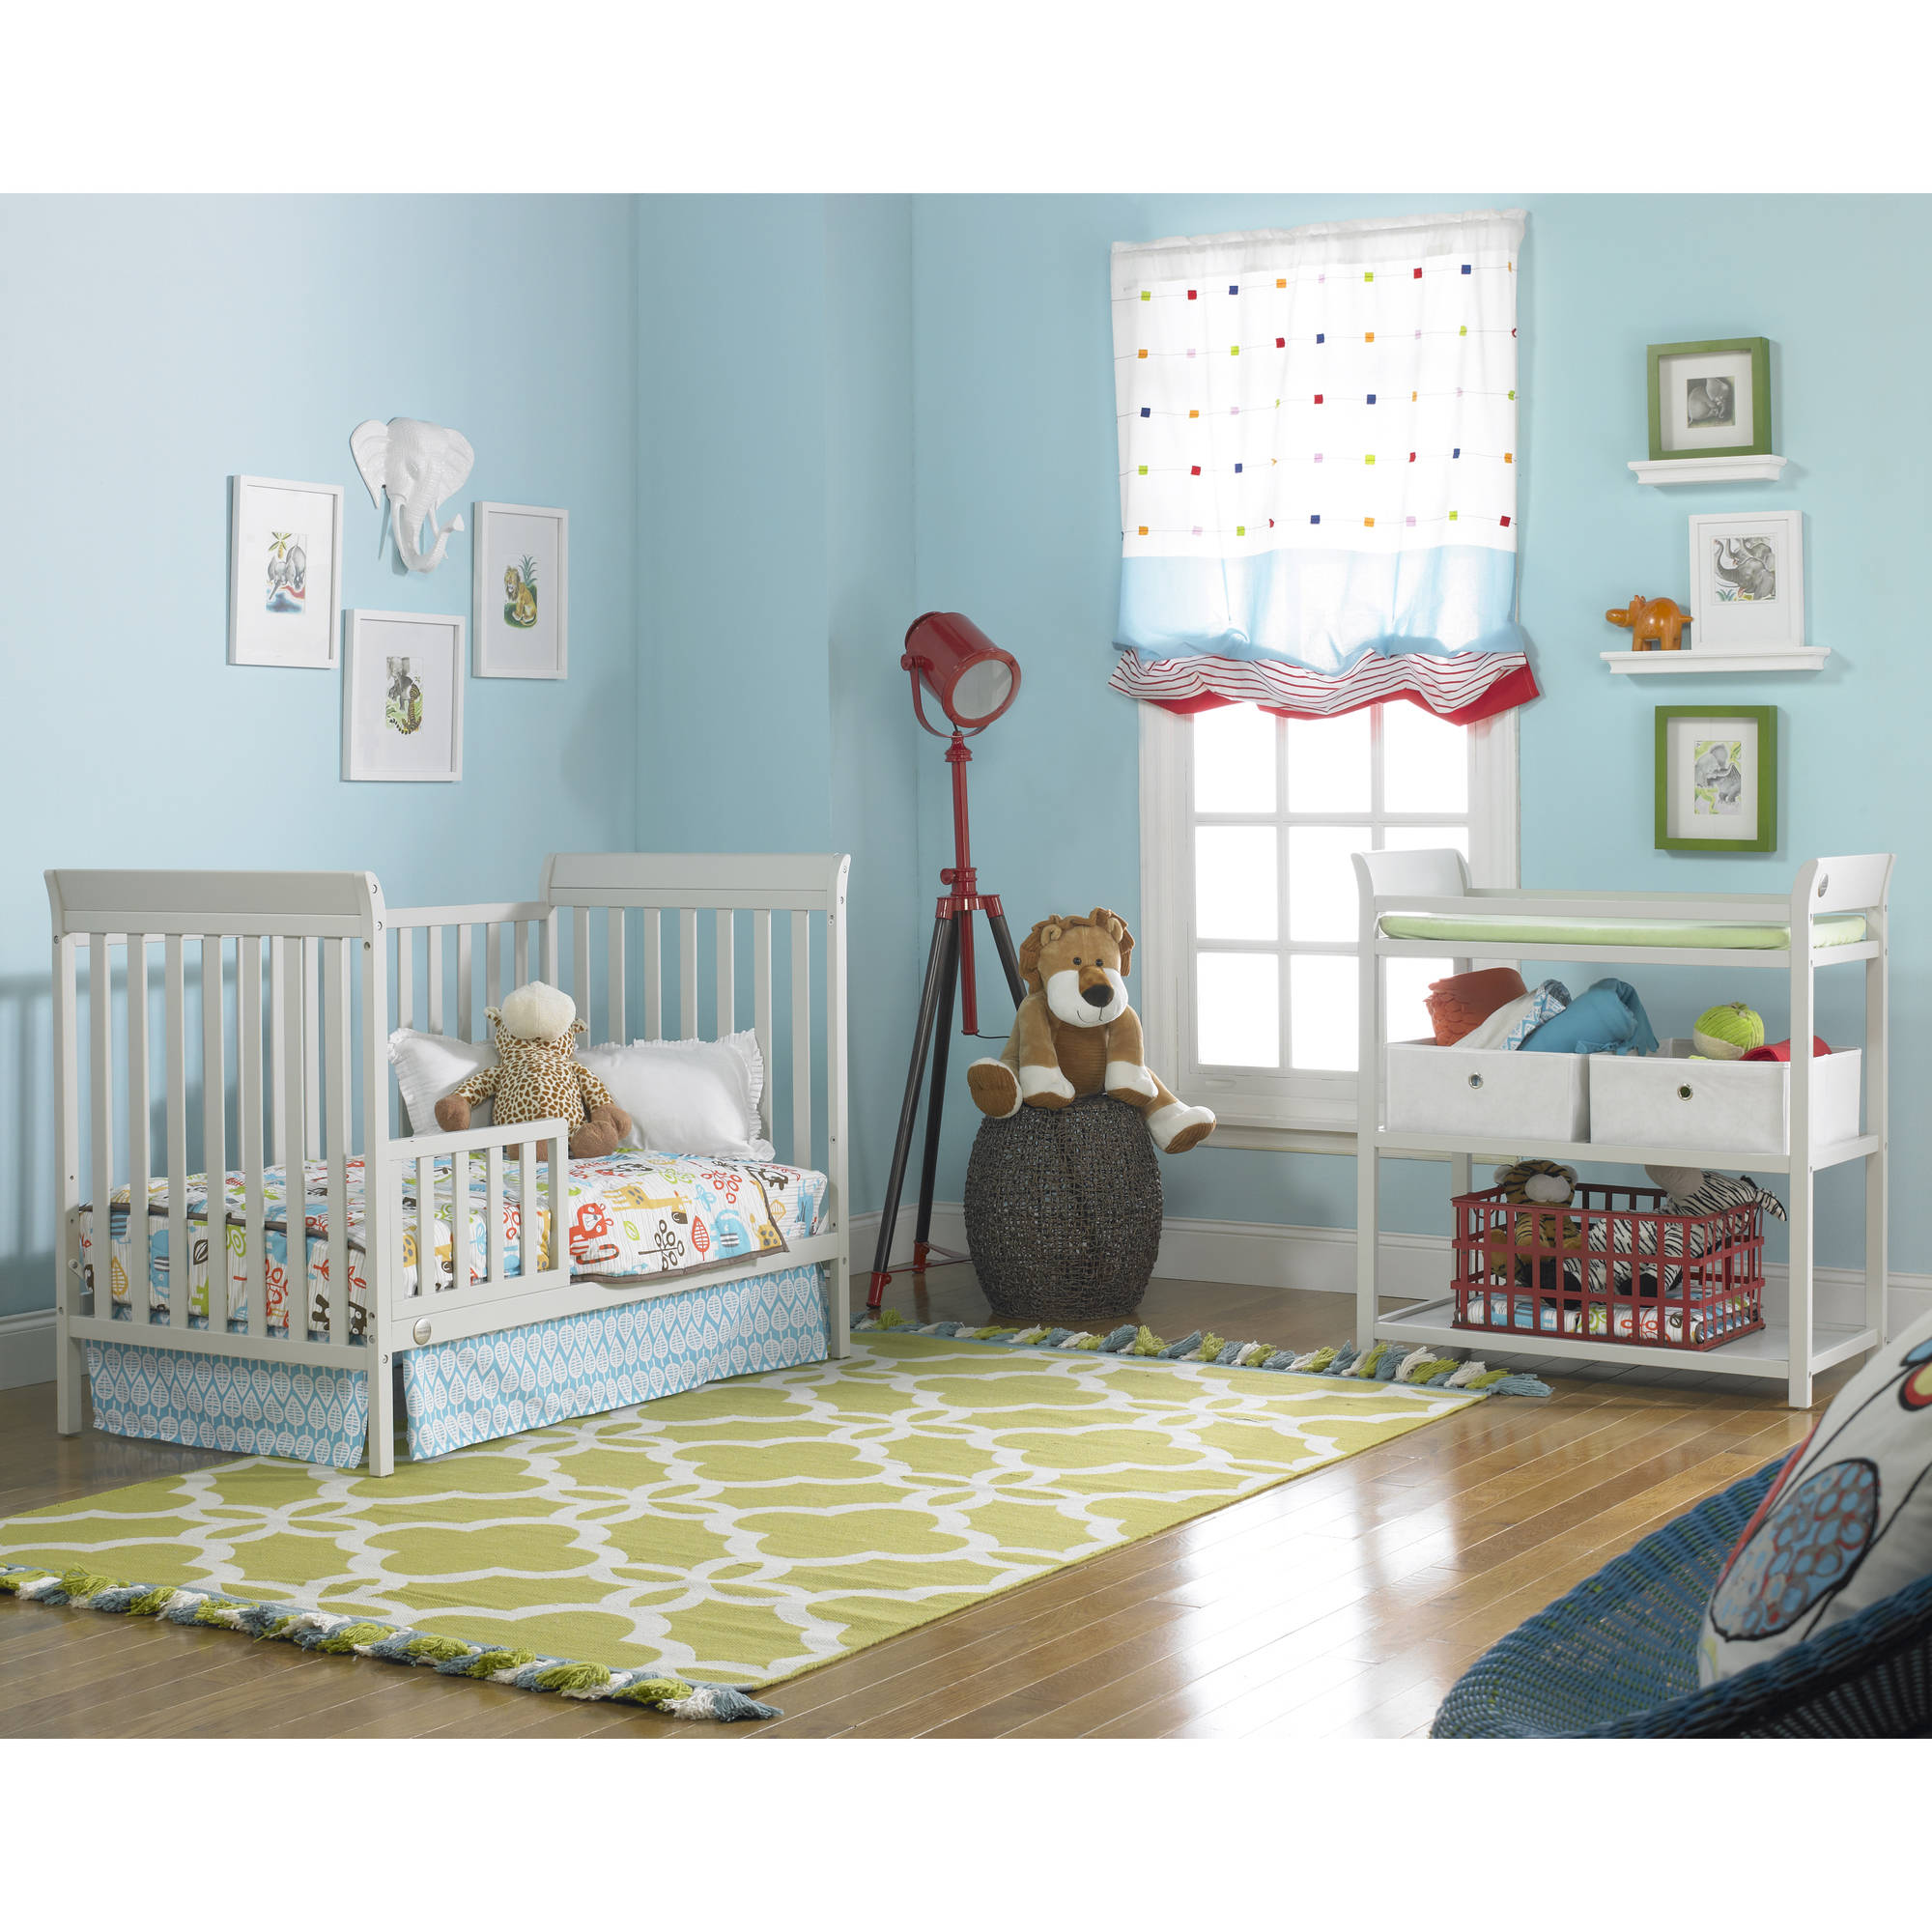 grey furniture nursery. Fisher-Price 3-in-1 Nursery Furniture Set With Mattress Misty Gray - Walmart.com Grey